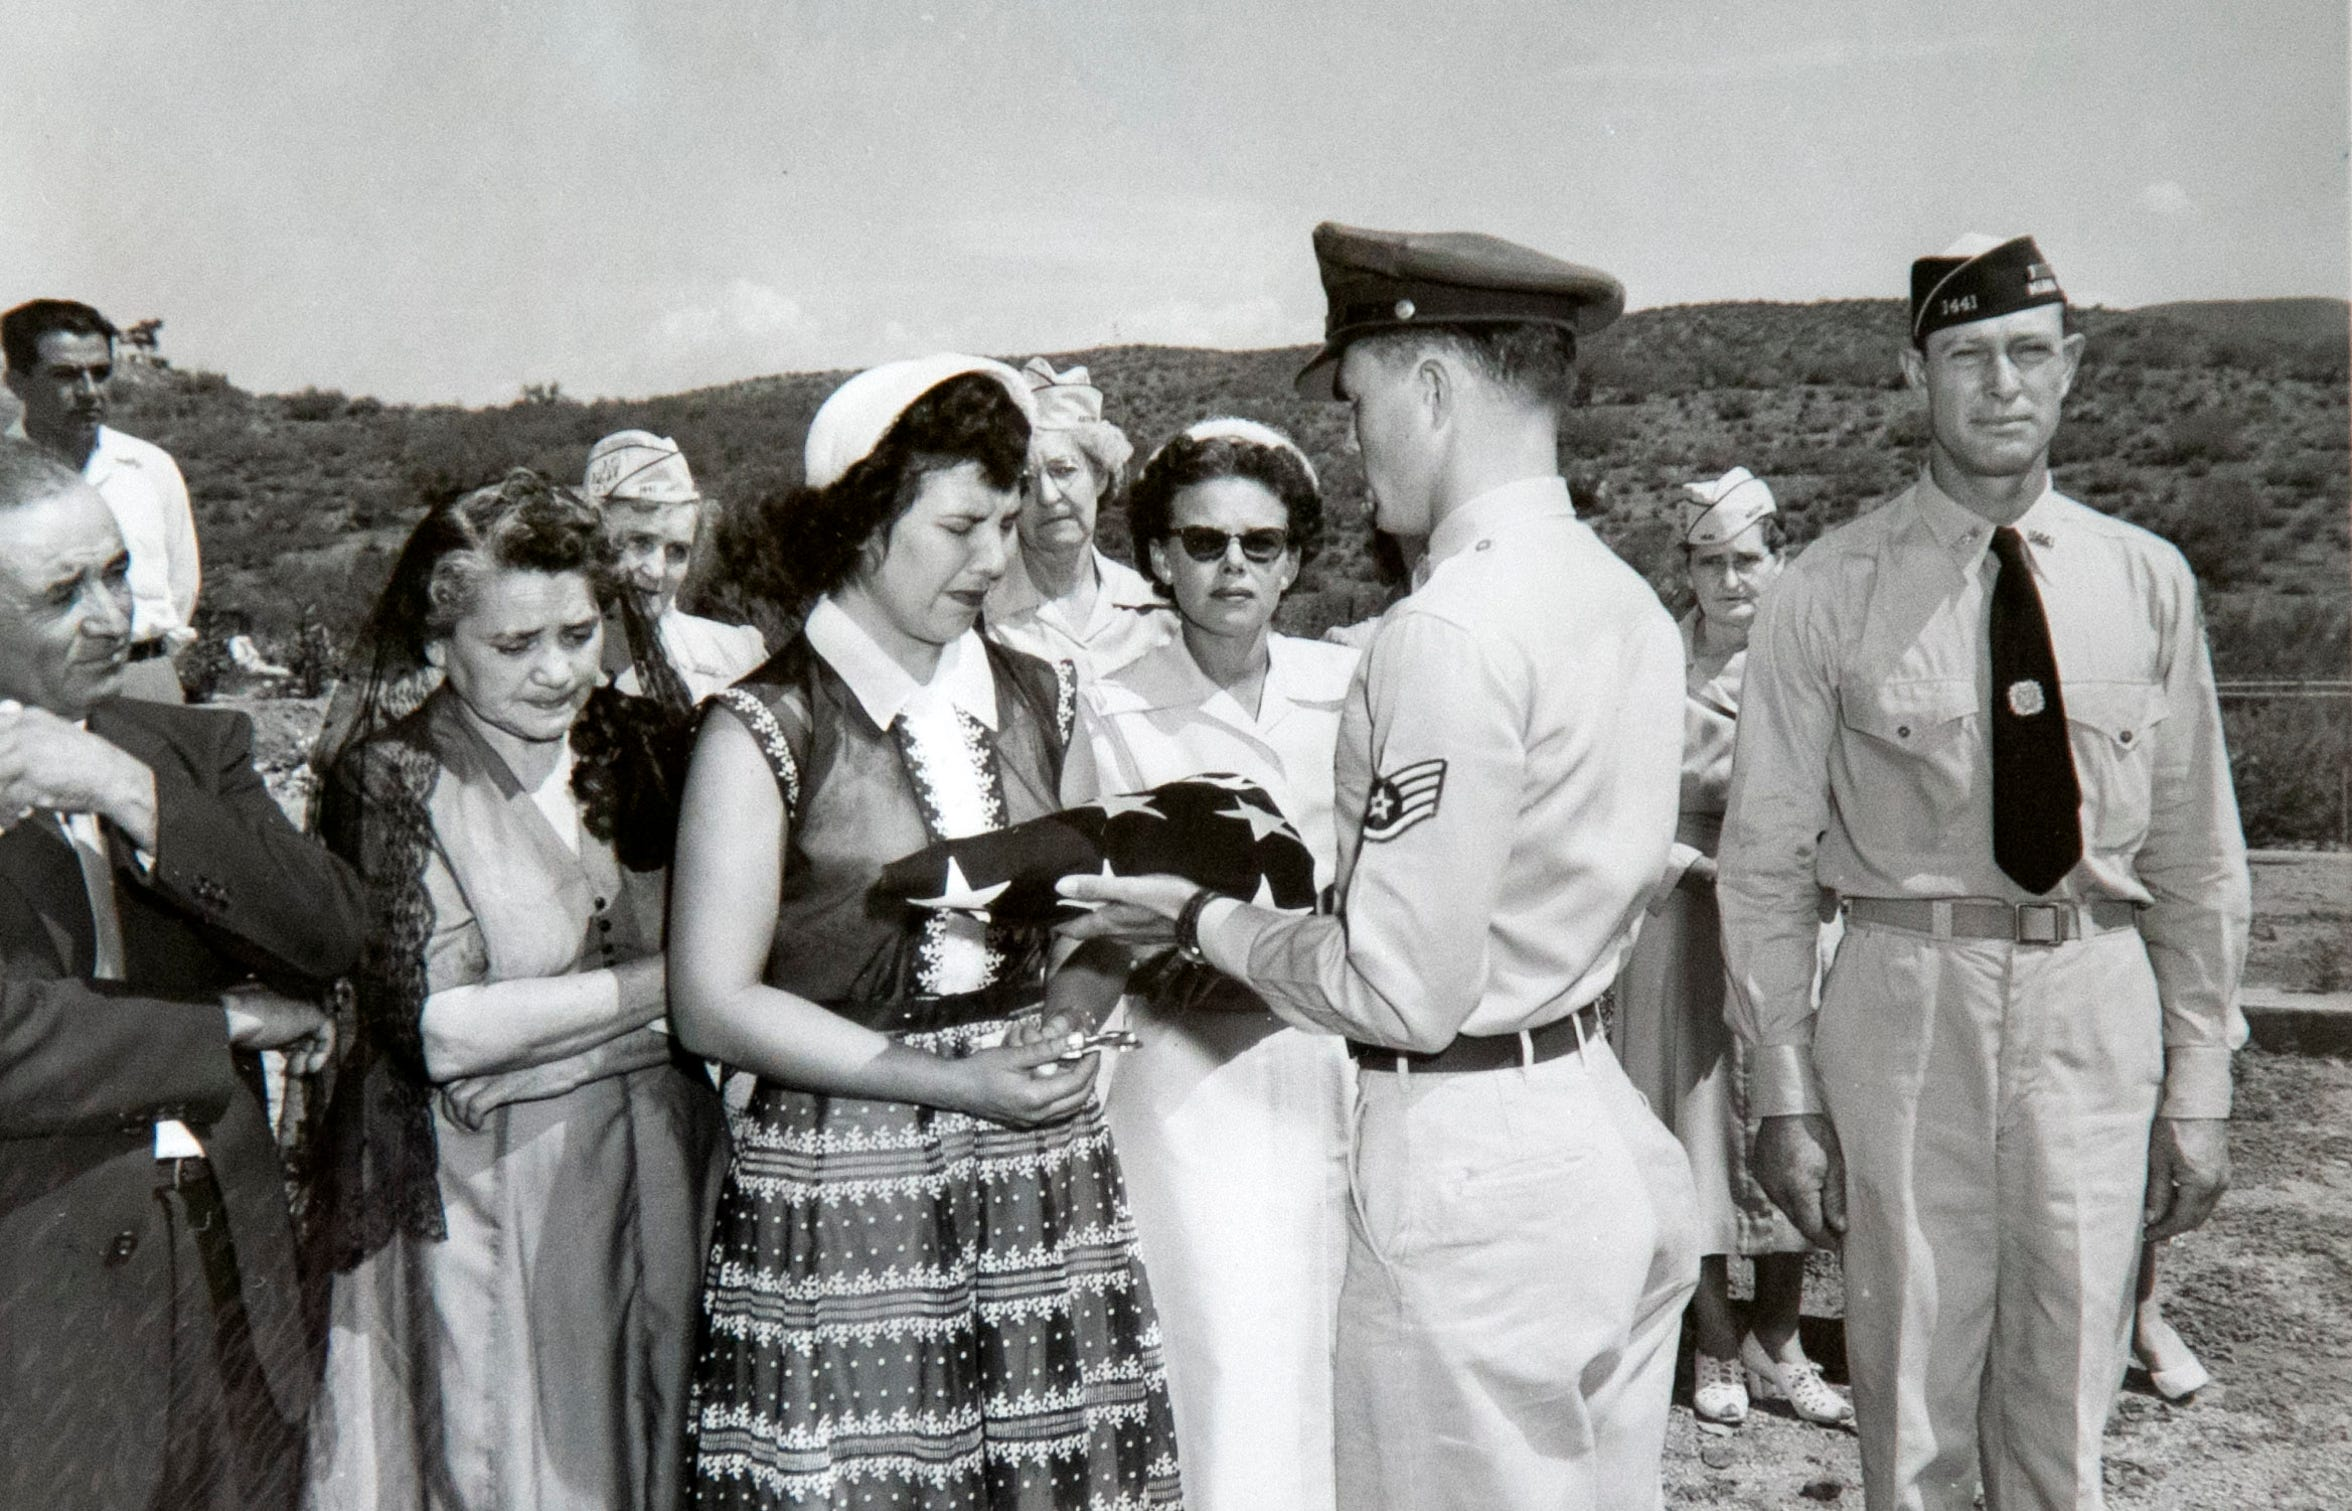 Jovita Campos receives a folded American flag during the funeral service for her husband, Staff Sgt. Joe Campos, in Miami, Ariz., in July of 1953. Campos, a gunner on a B-26 bomber was likely the first American killed in the Korean War when his plane went down in the Yellow Sea on June 28, 1950. It took nearly three years for his remains to be found and identified so he could receive a proper burial.